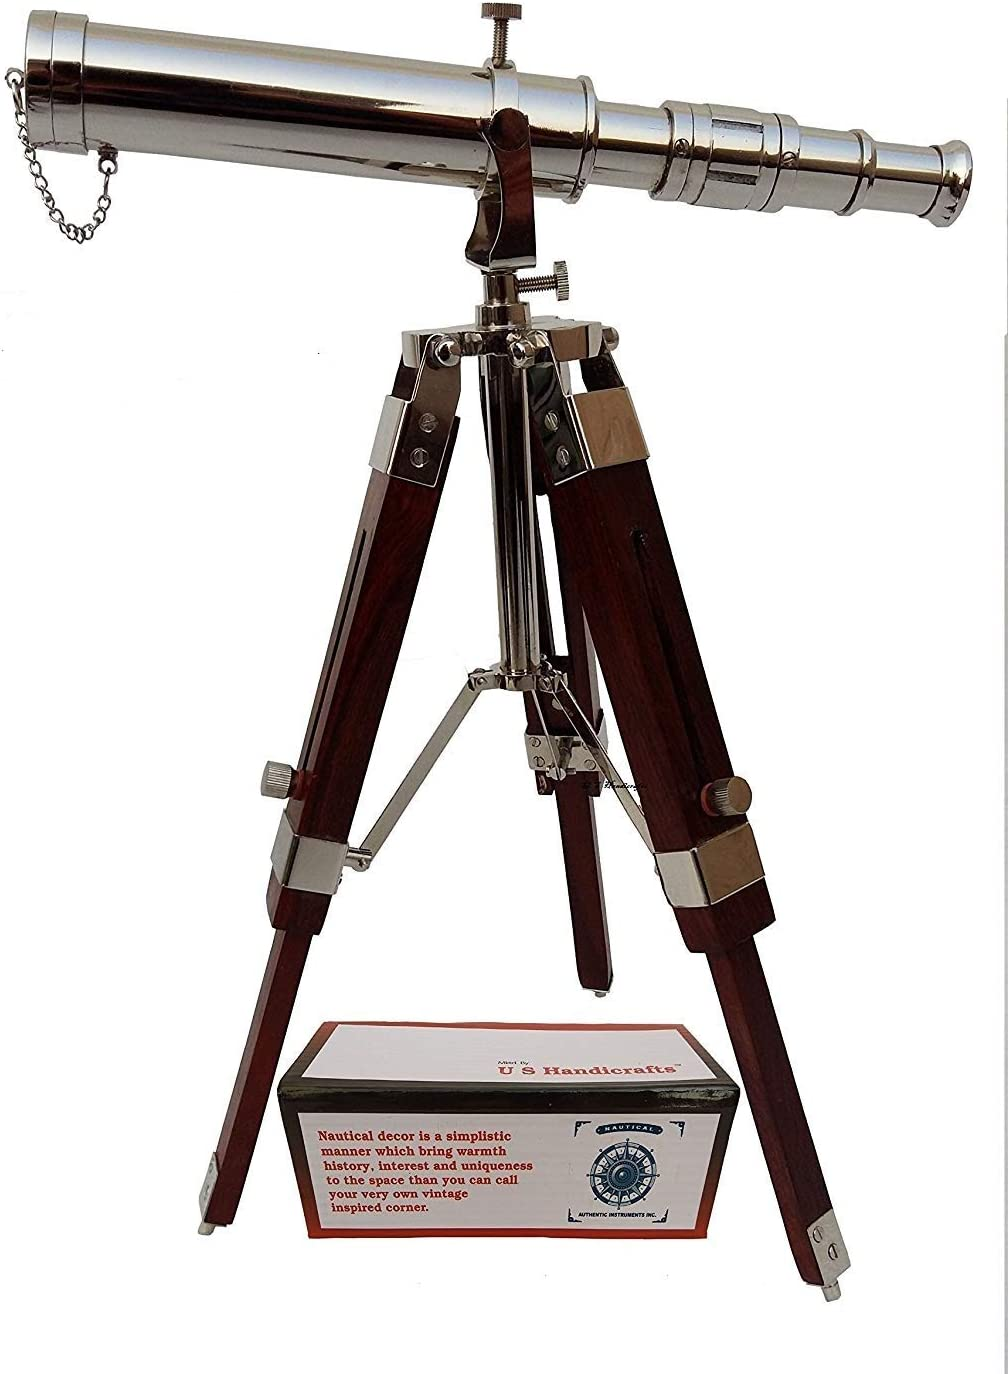 Vintage Brass Nickle Telescope on Tripod Stand/Chrome Desktop Telescope for Home Decor & Table Accessory Nautical Spyglass Telescope for Navy and Outdoor Adventures.